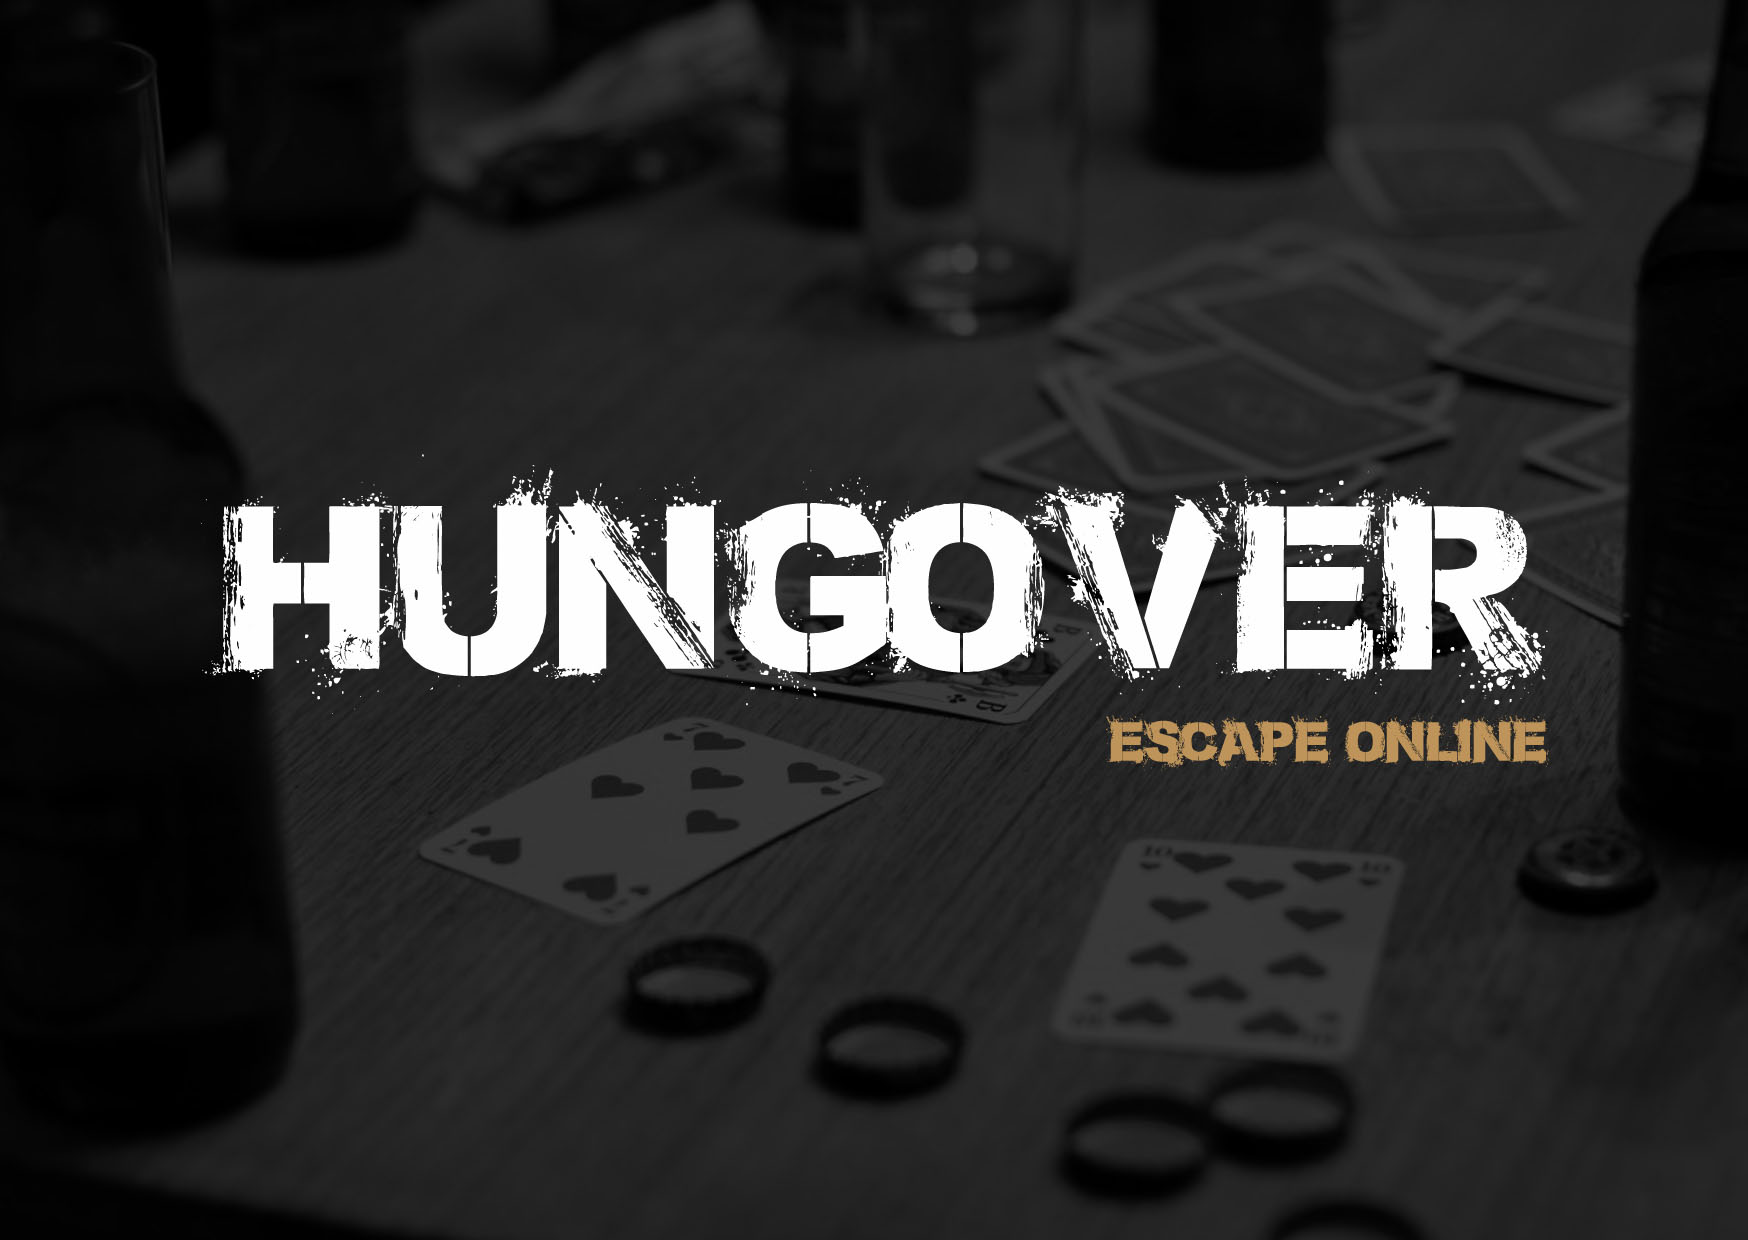 Hungover escape online